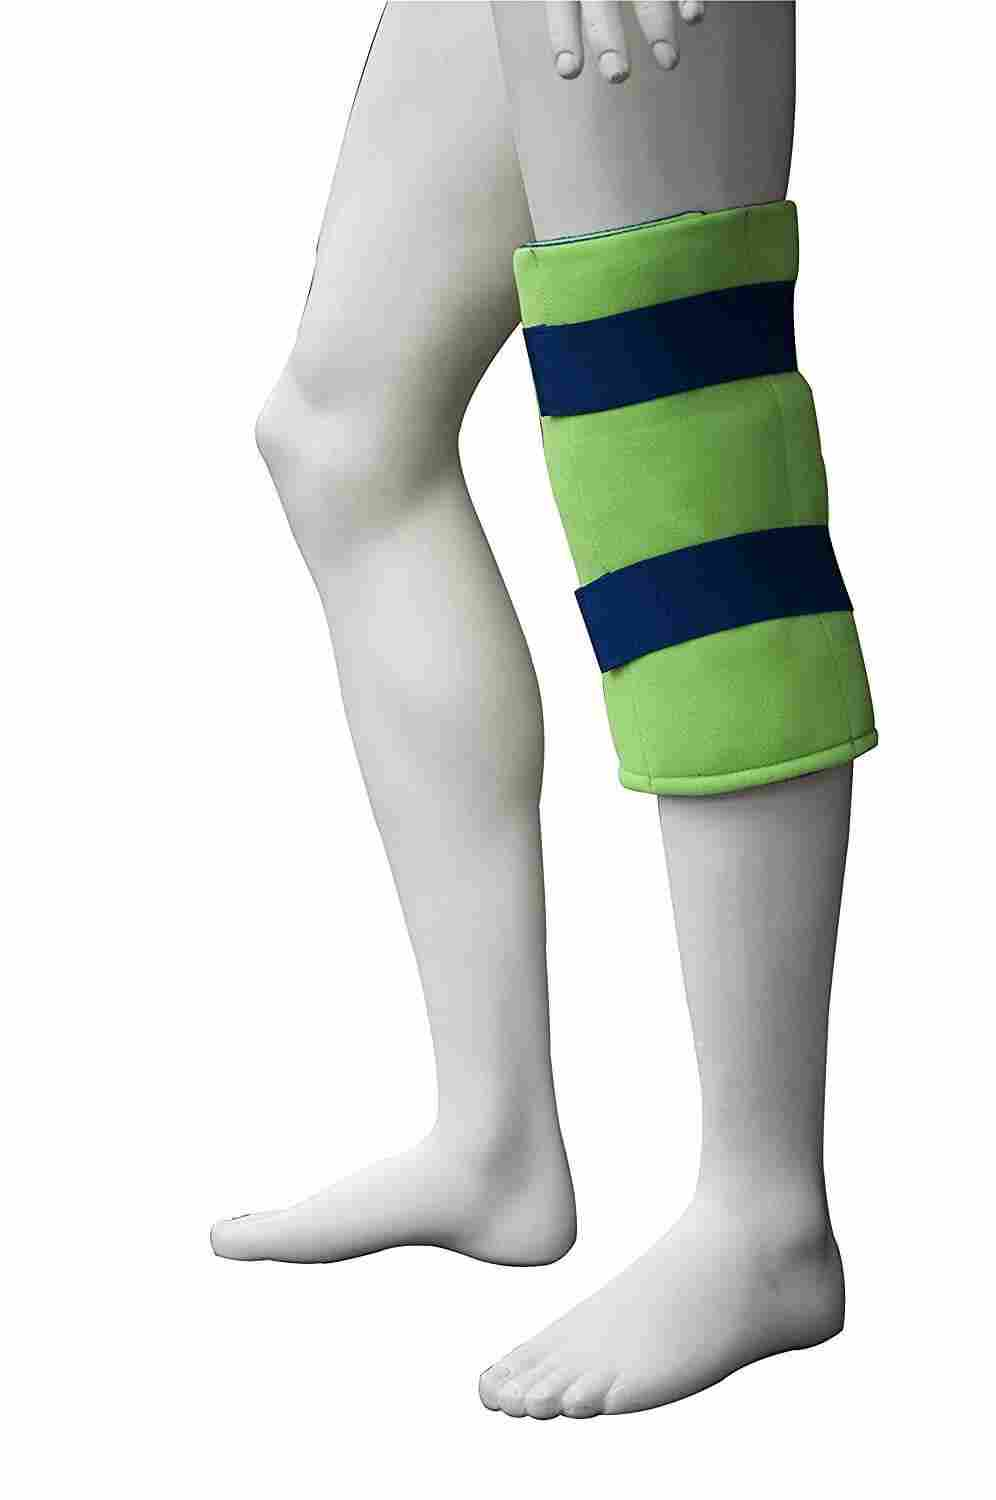 Polar Ice Standard Knee Wrap, Cold Therapy Ice Pack, Wearable Ice Pack